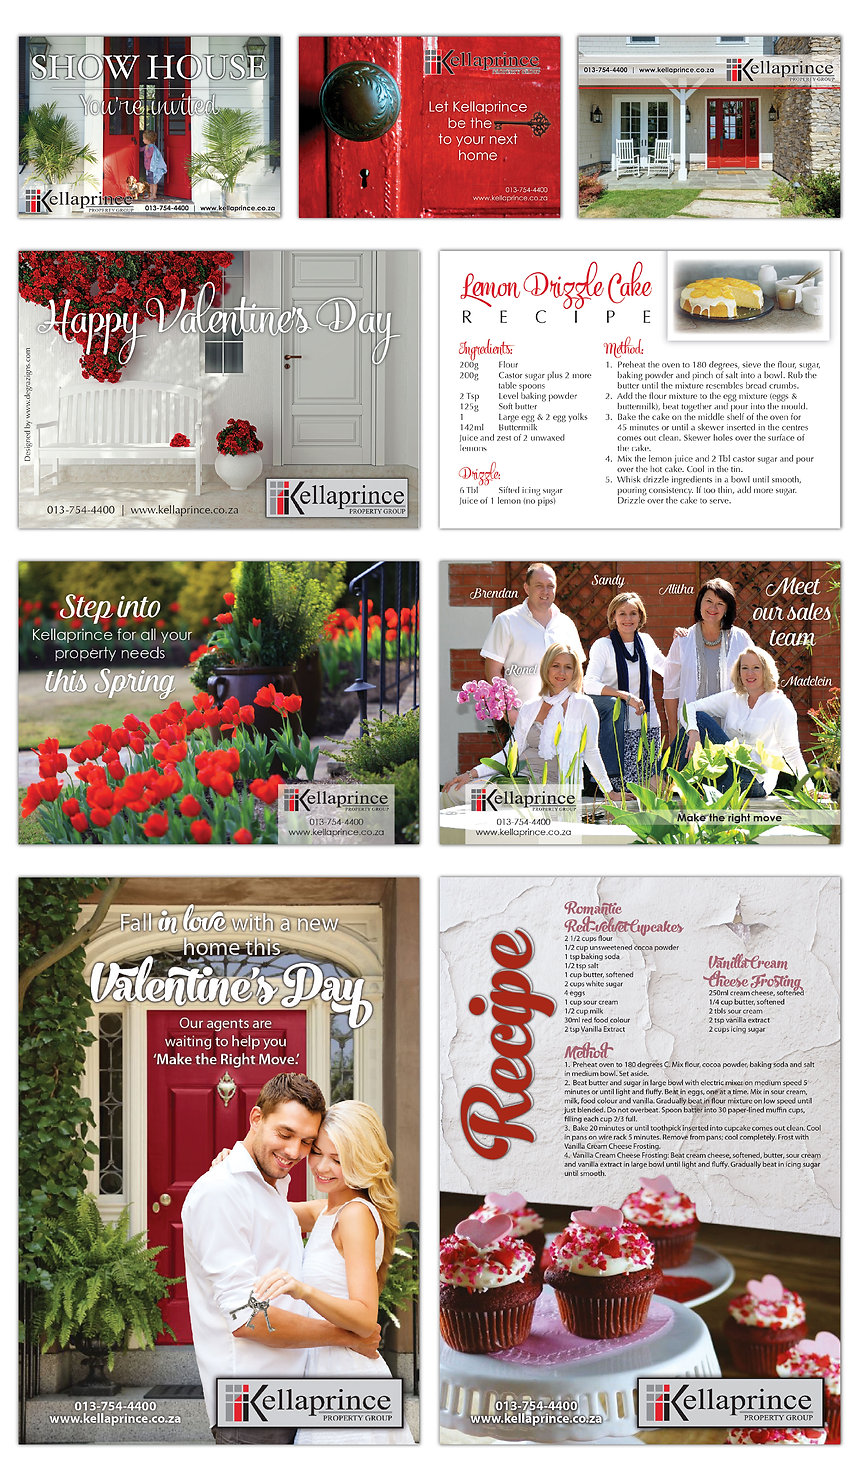 Kellaprince Properties Marketing Material Designs